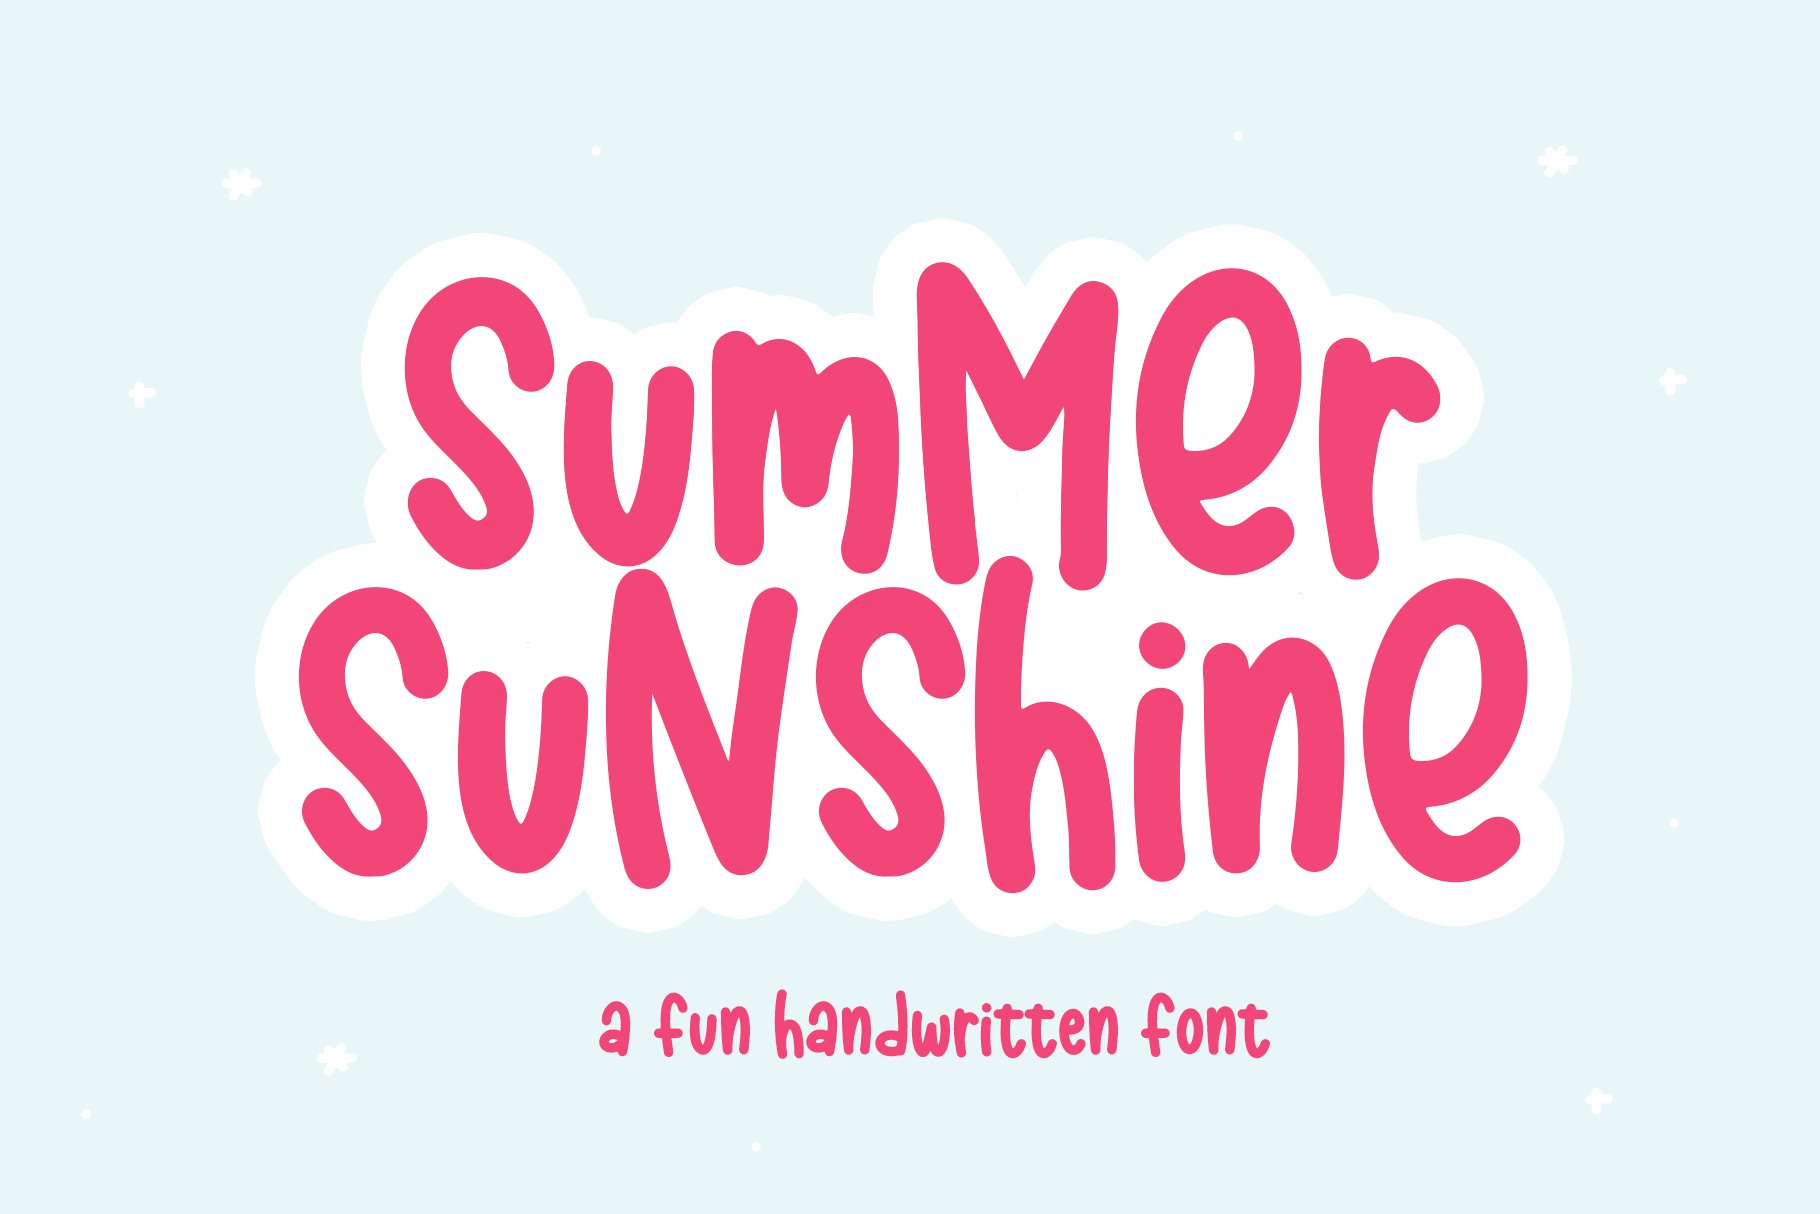 Font Bundle - Handwritten Fonts for Crafters! example image 12